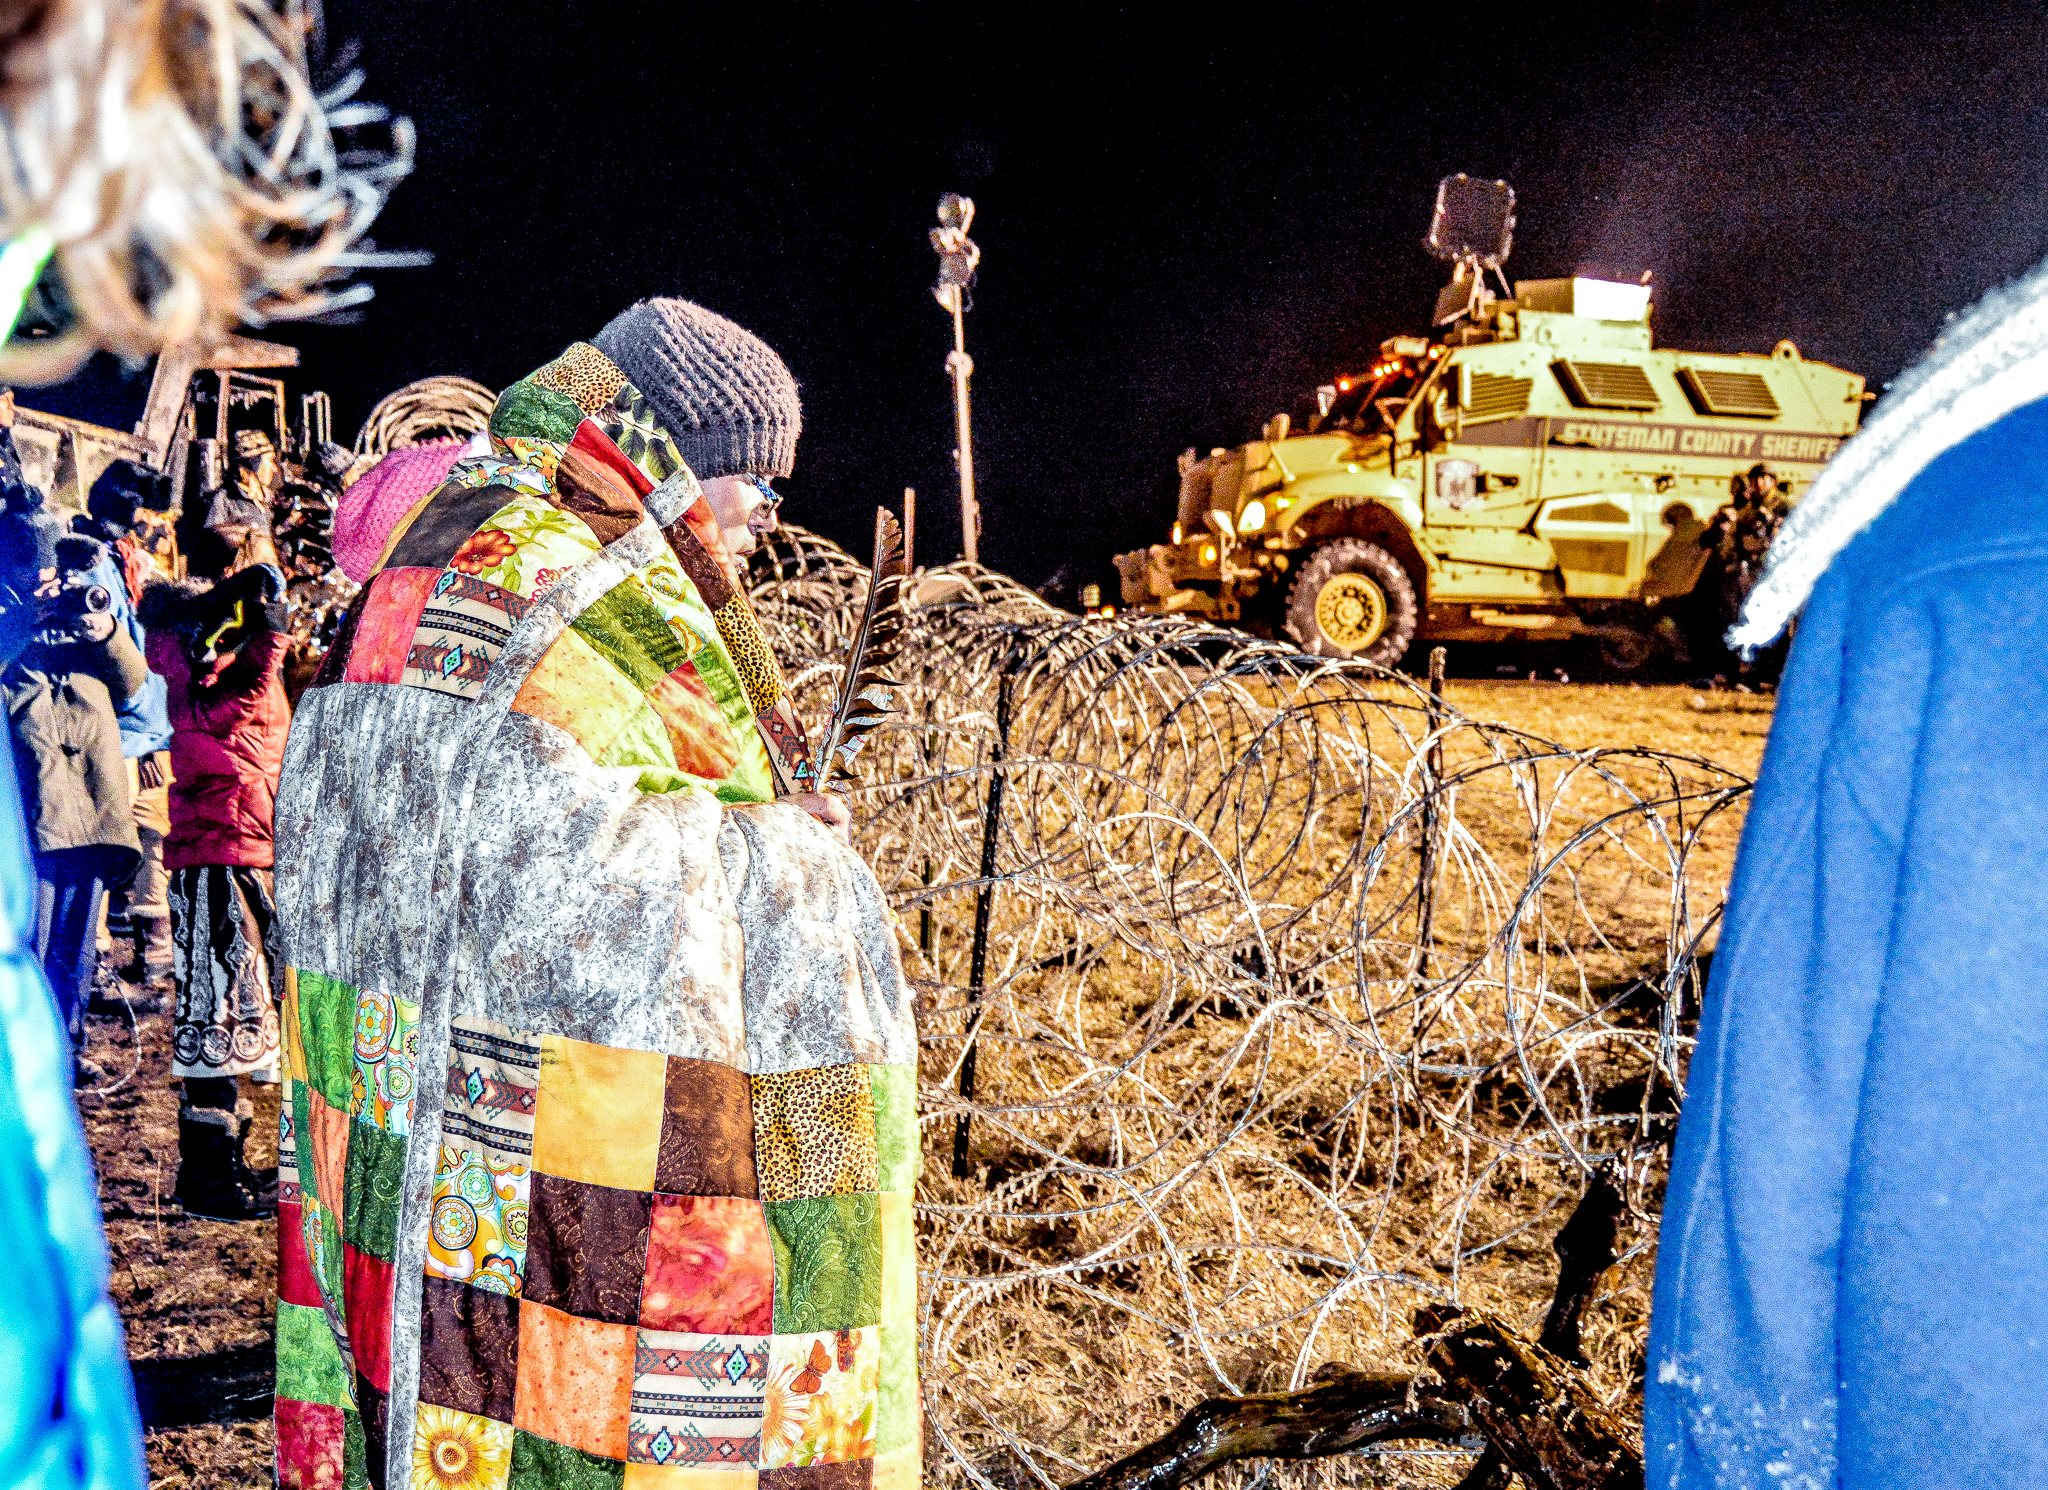 Peter d'Errico: Defending tribal sovereignty in the post-DAPL era